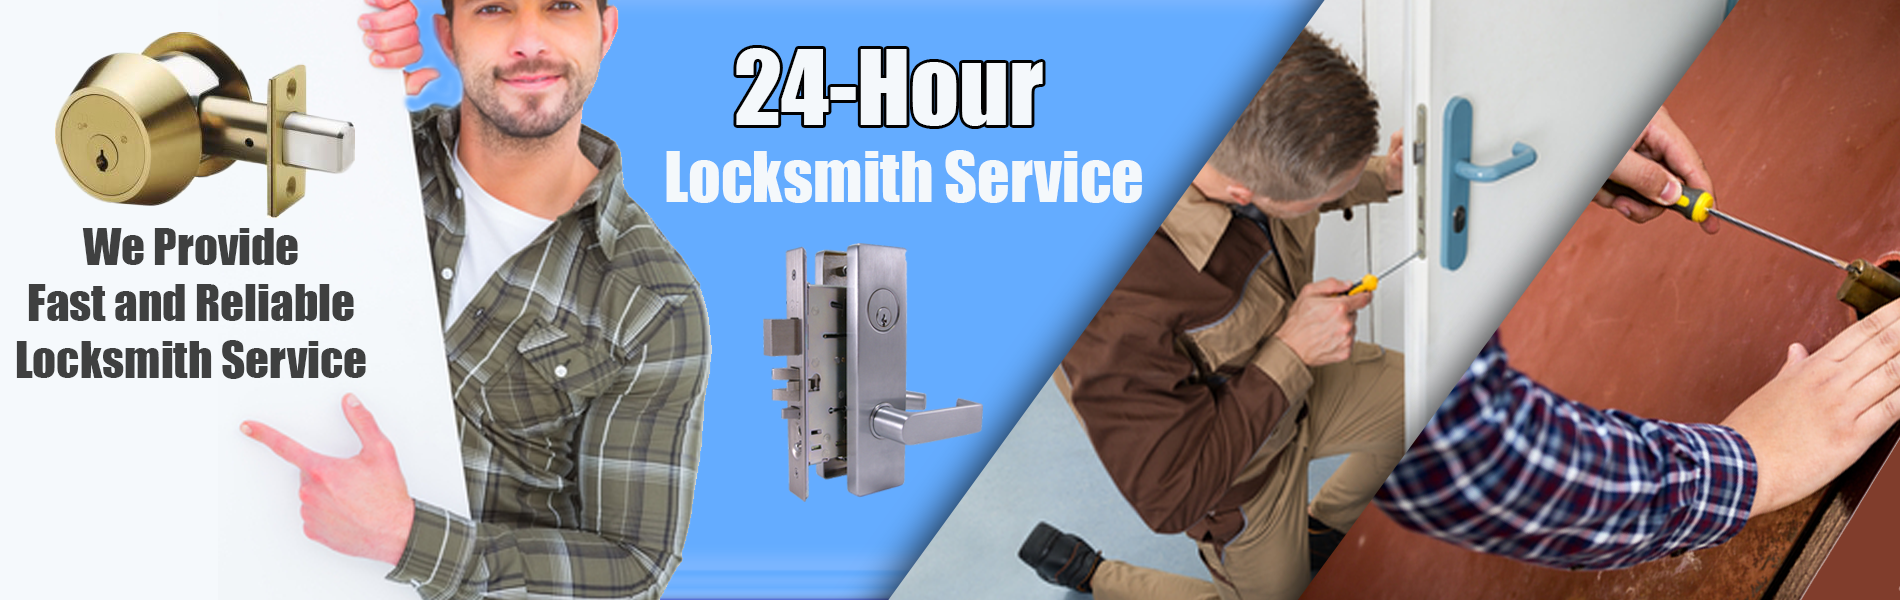 Essex MD Locksmith Store Essex, MD 410-397-0046